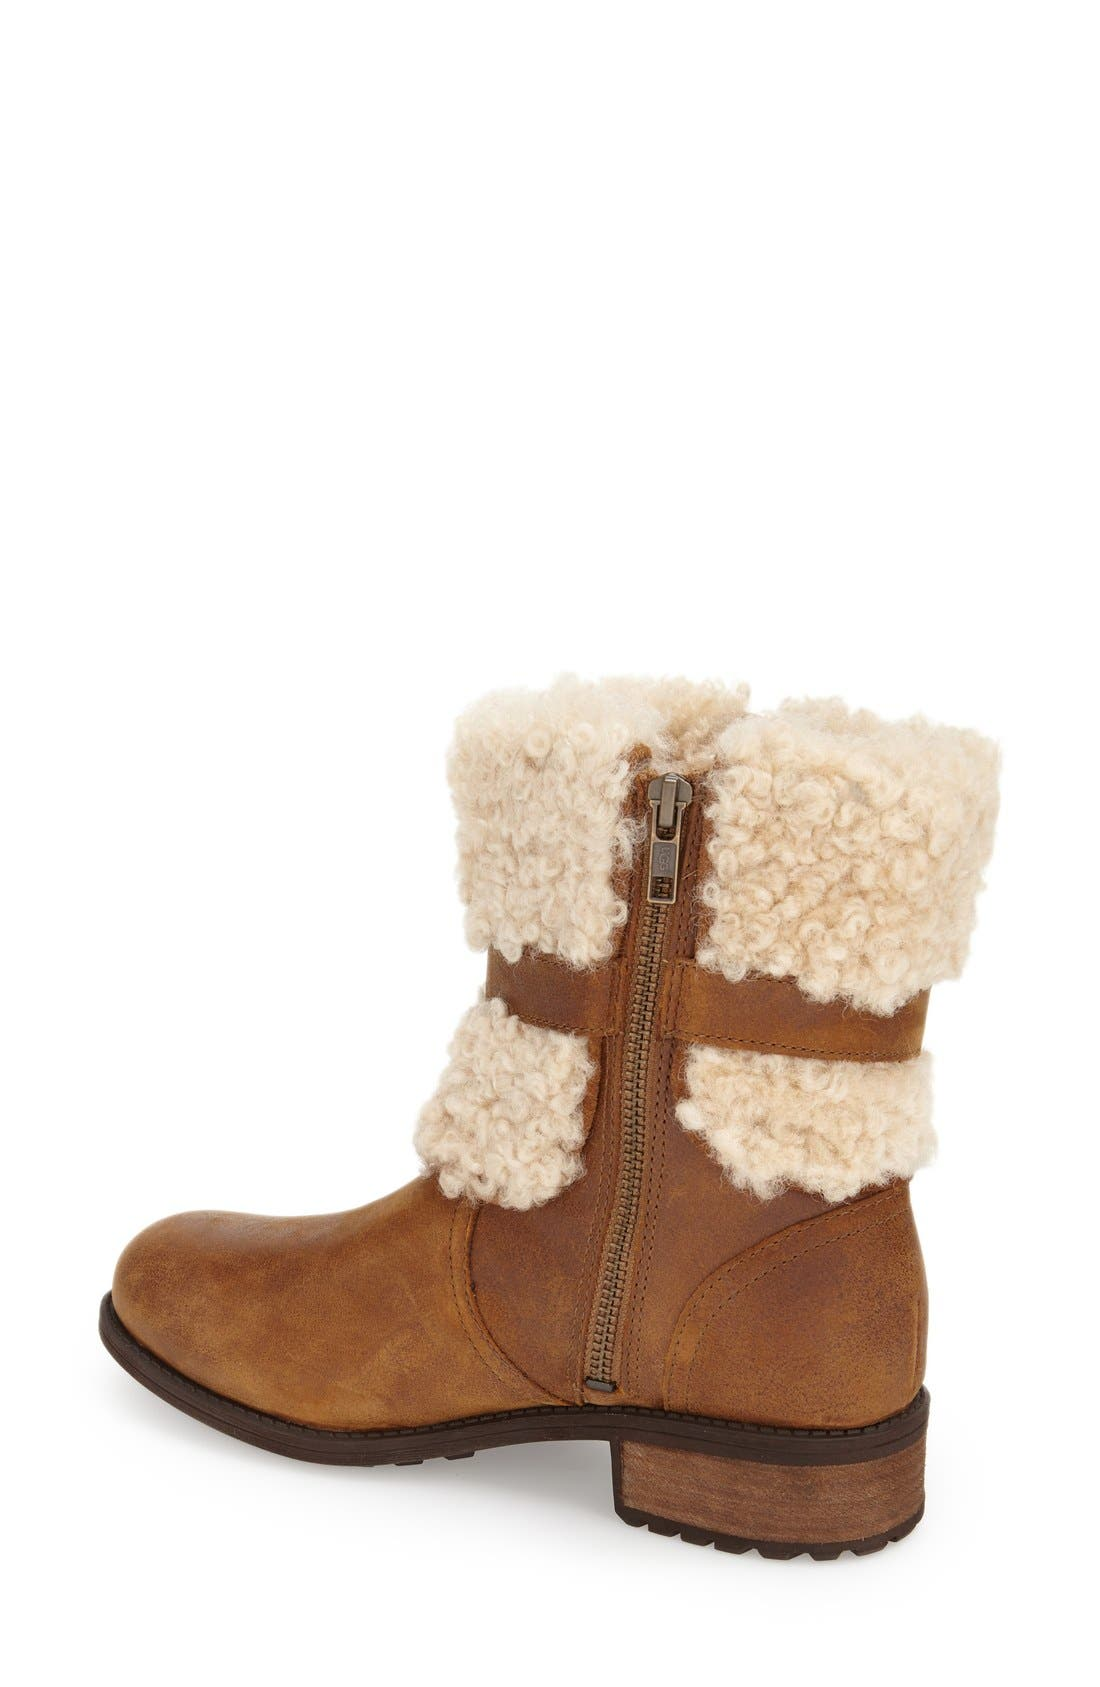 Blayre II Shearling Cuff Bootie,                             Alternate thumbnail 2, color,                             219